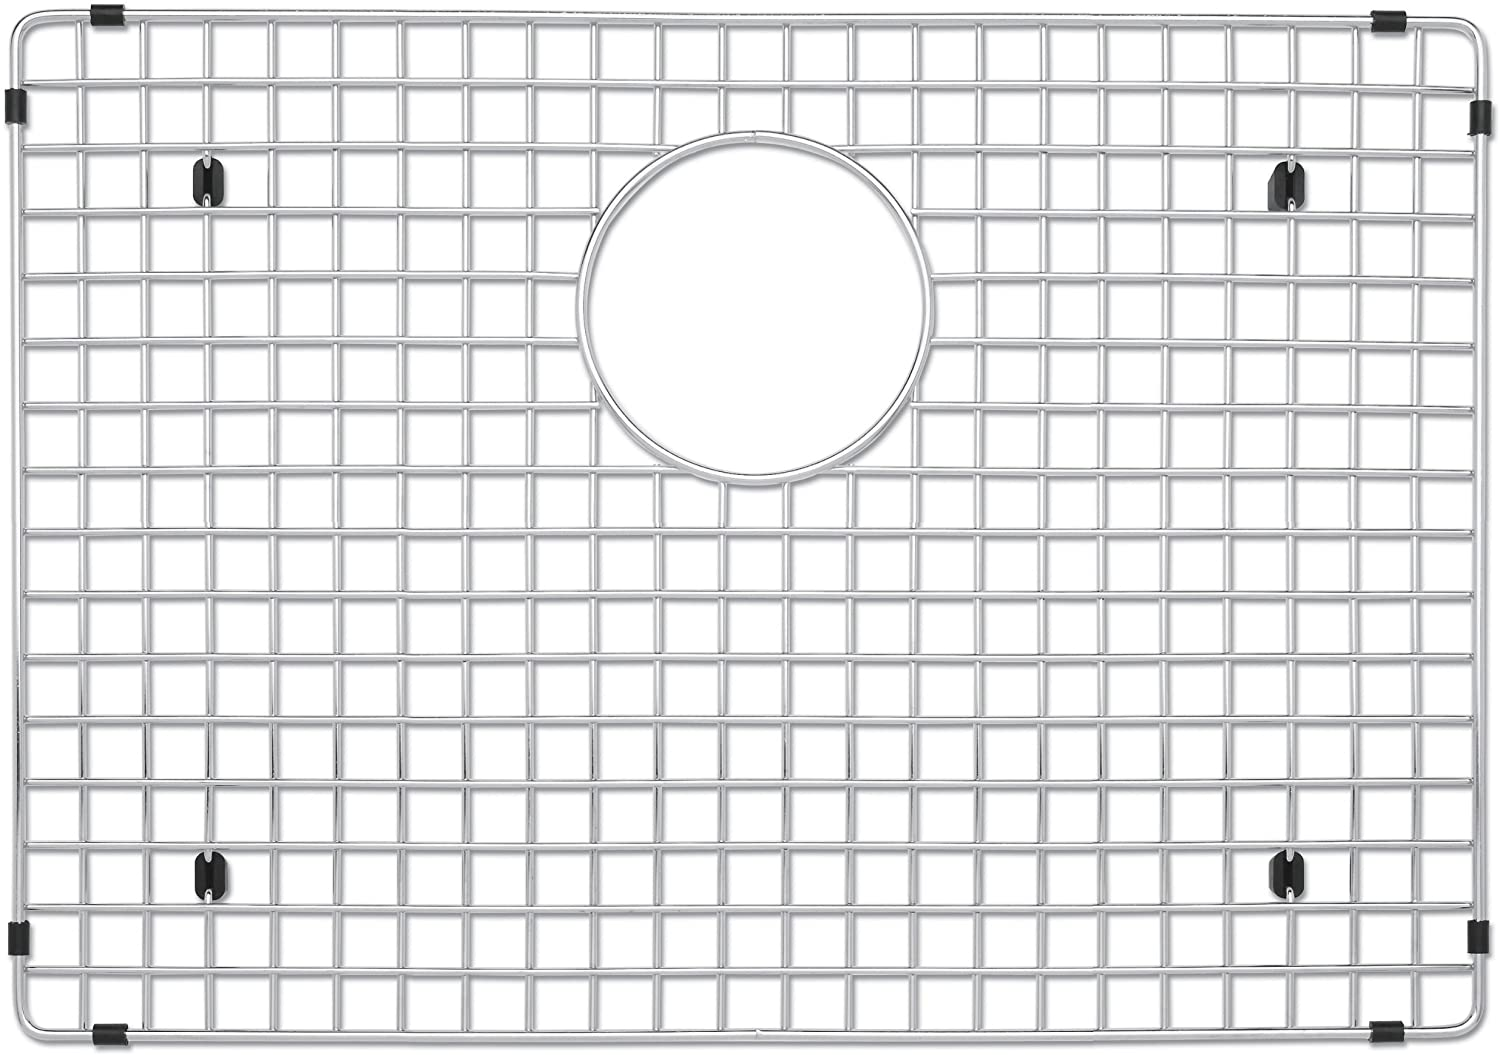 223191 Blanco Stainless Steel Sink Grid (Fits Precision & Precision 10 sinks 515822/819)